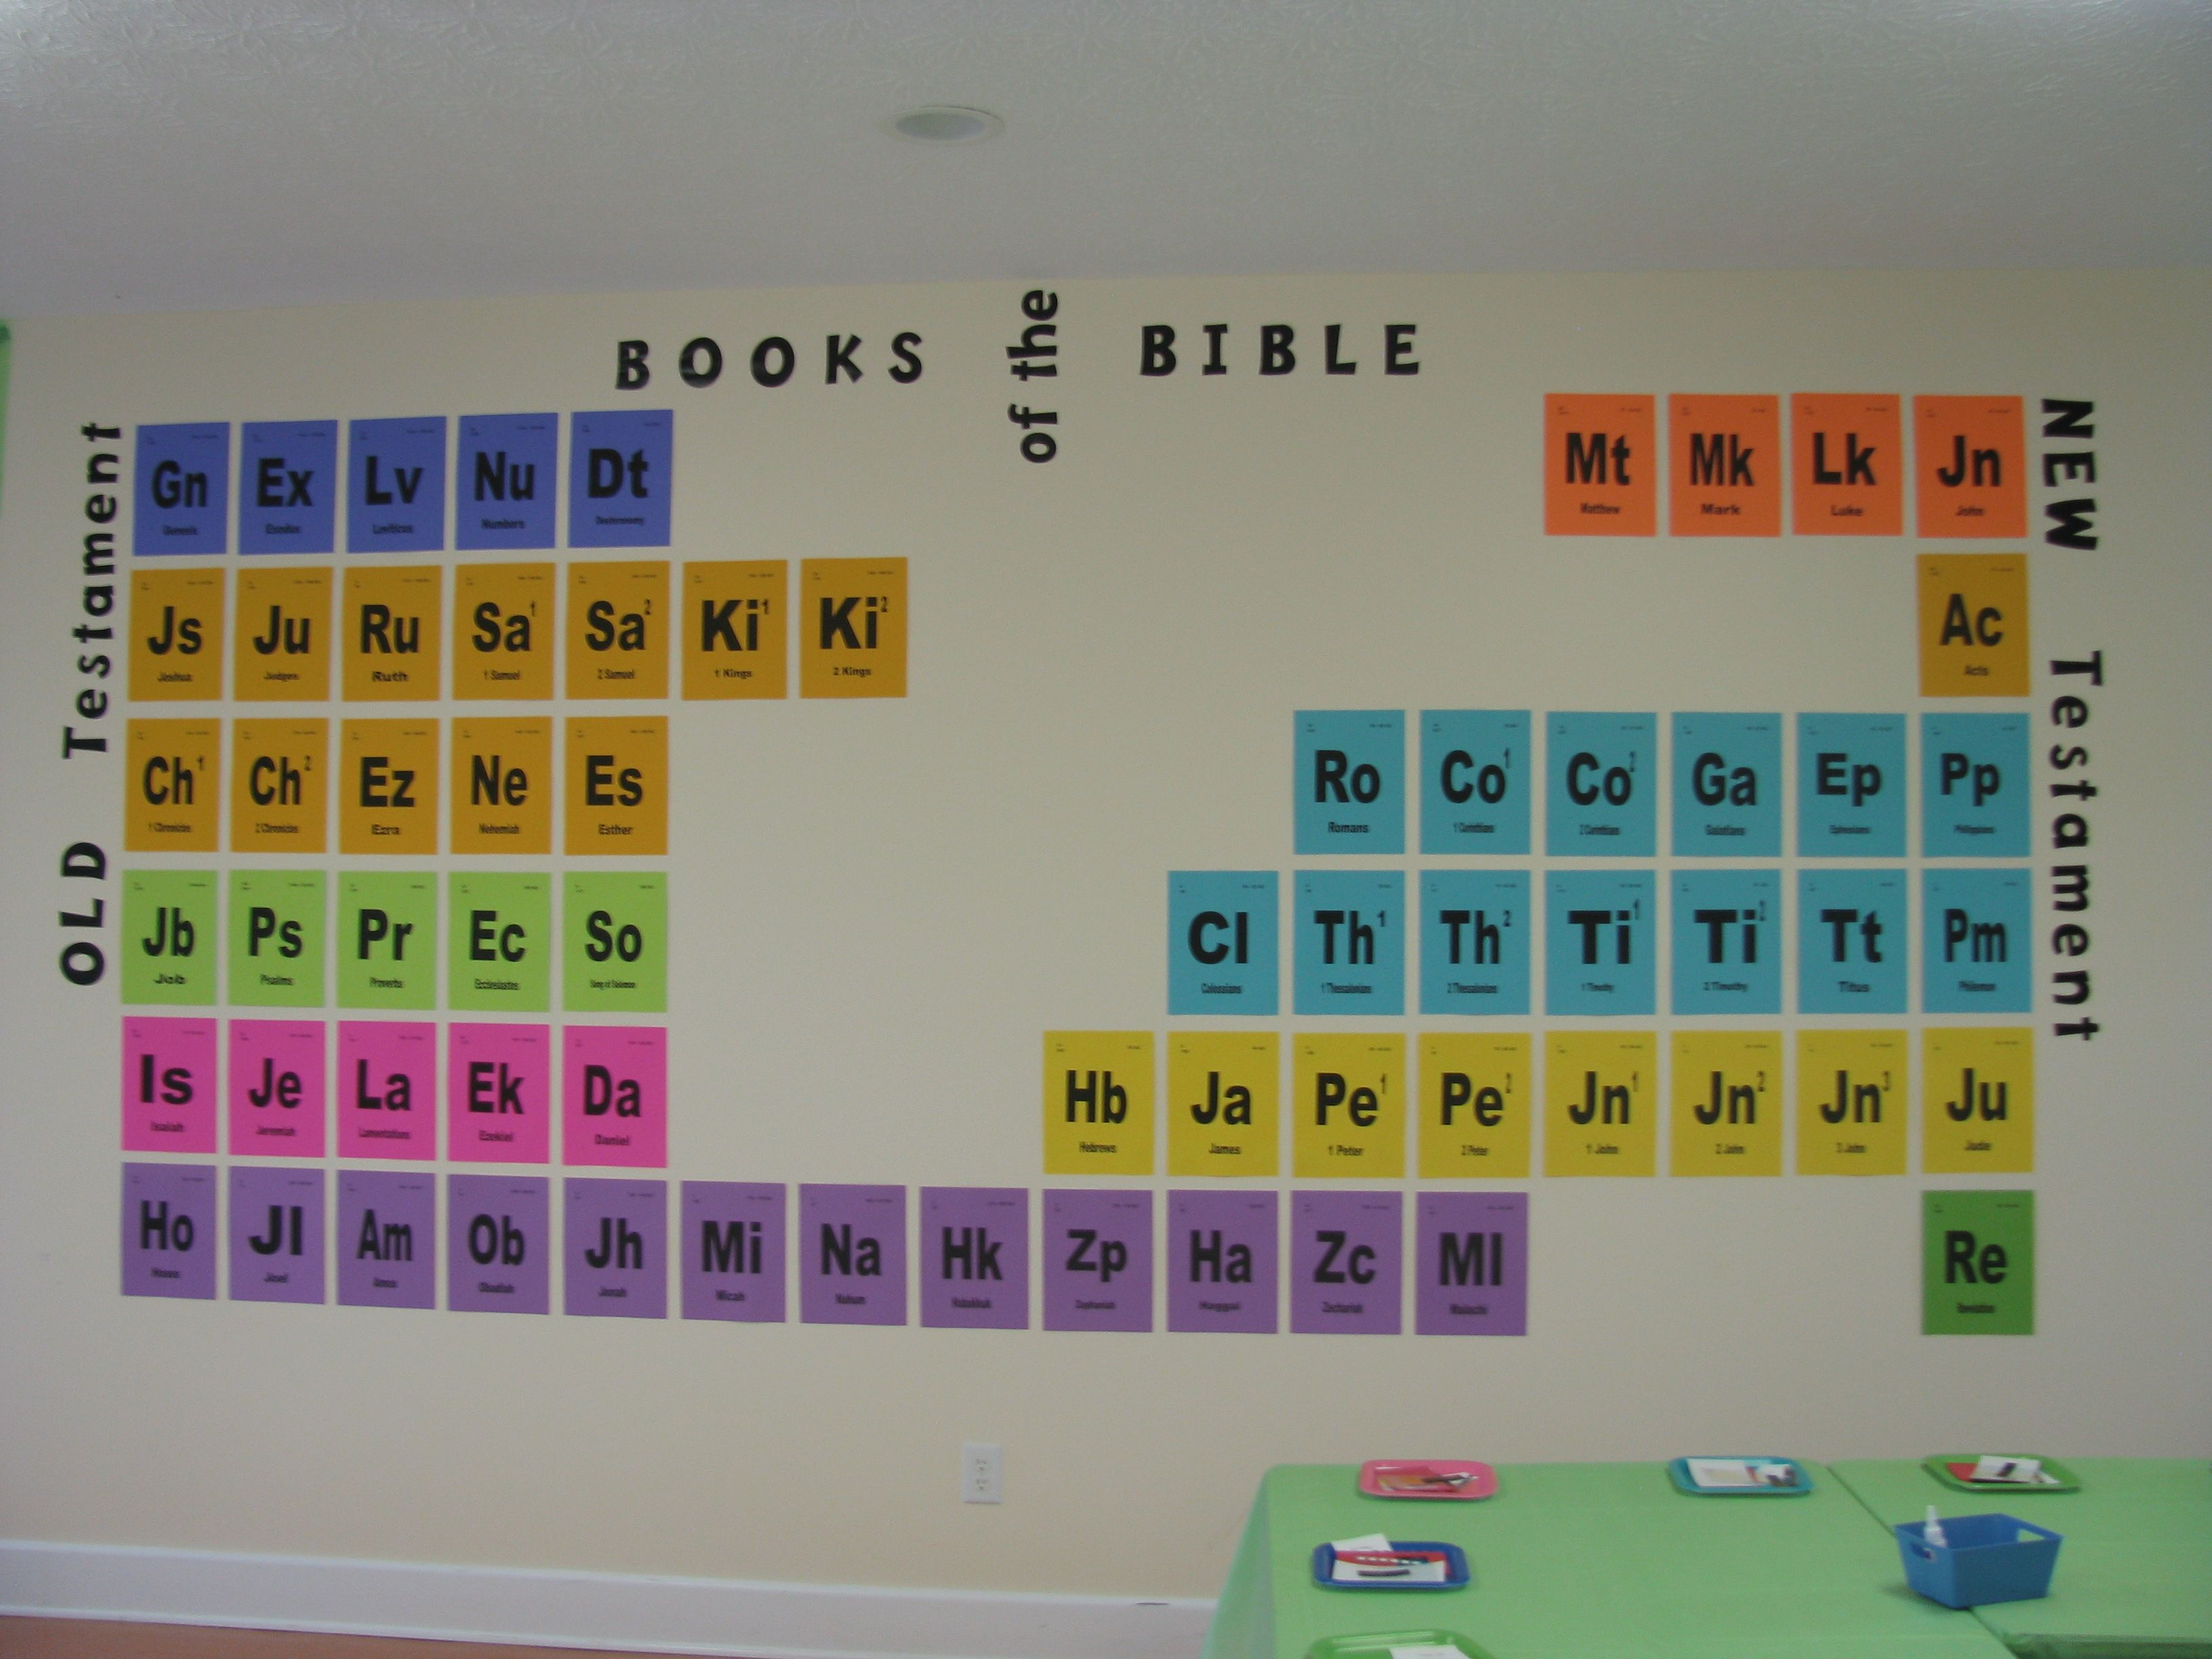 Periodic table style books of the bible i did this for the periodic table style books of the bible i did this for the fellowship hall gamestrikefo Gallery